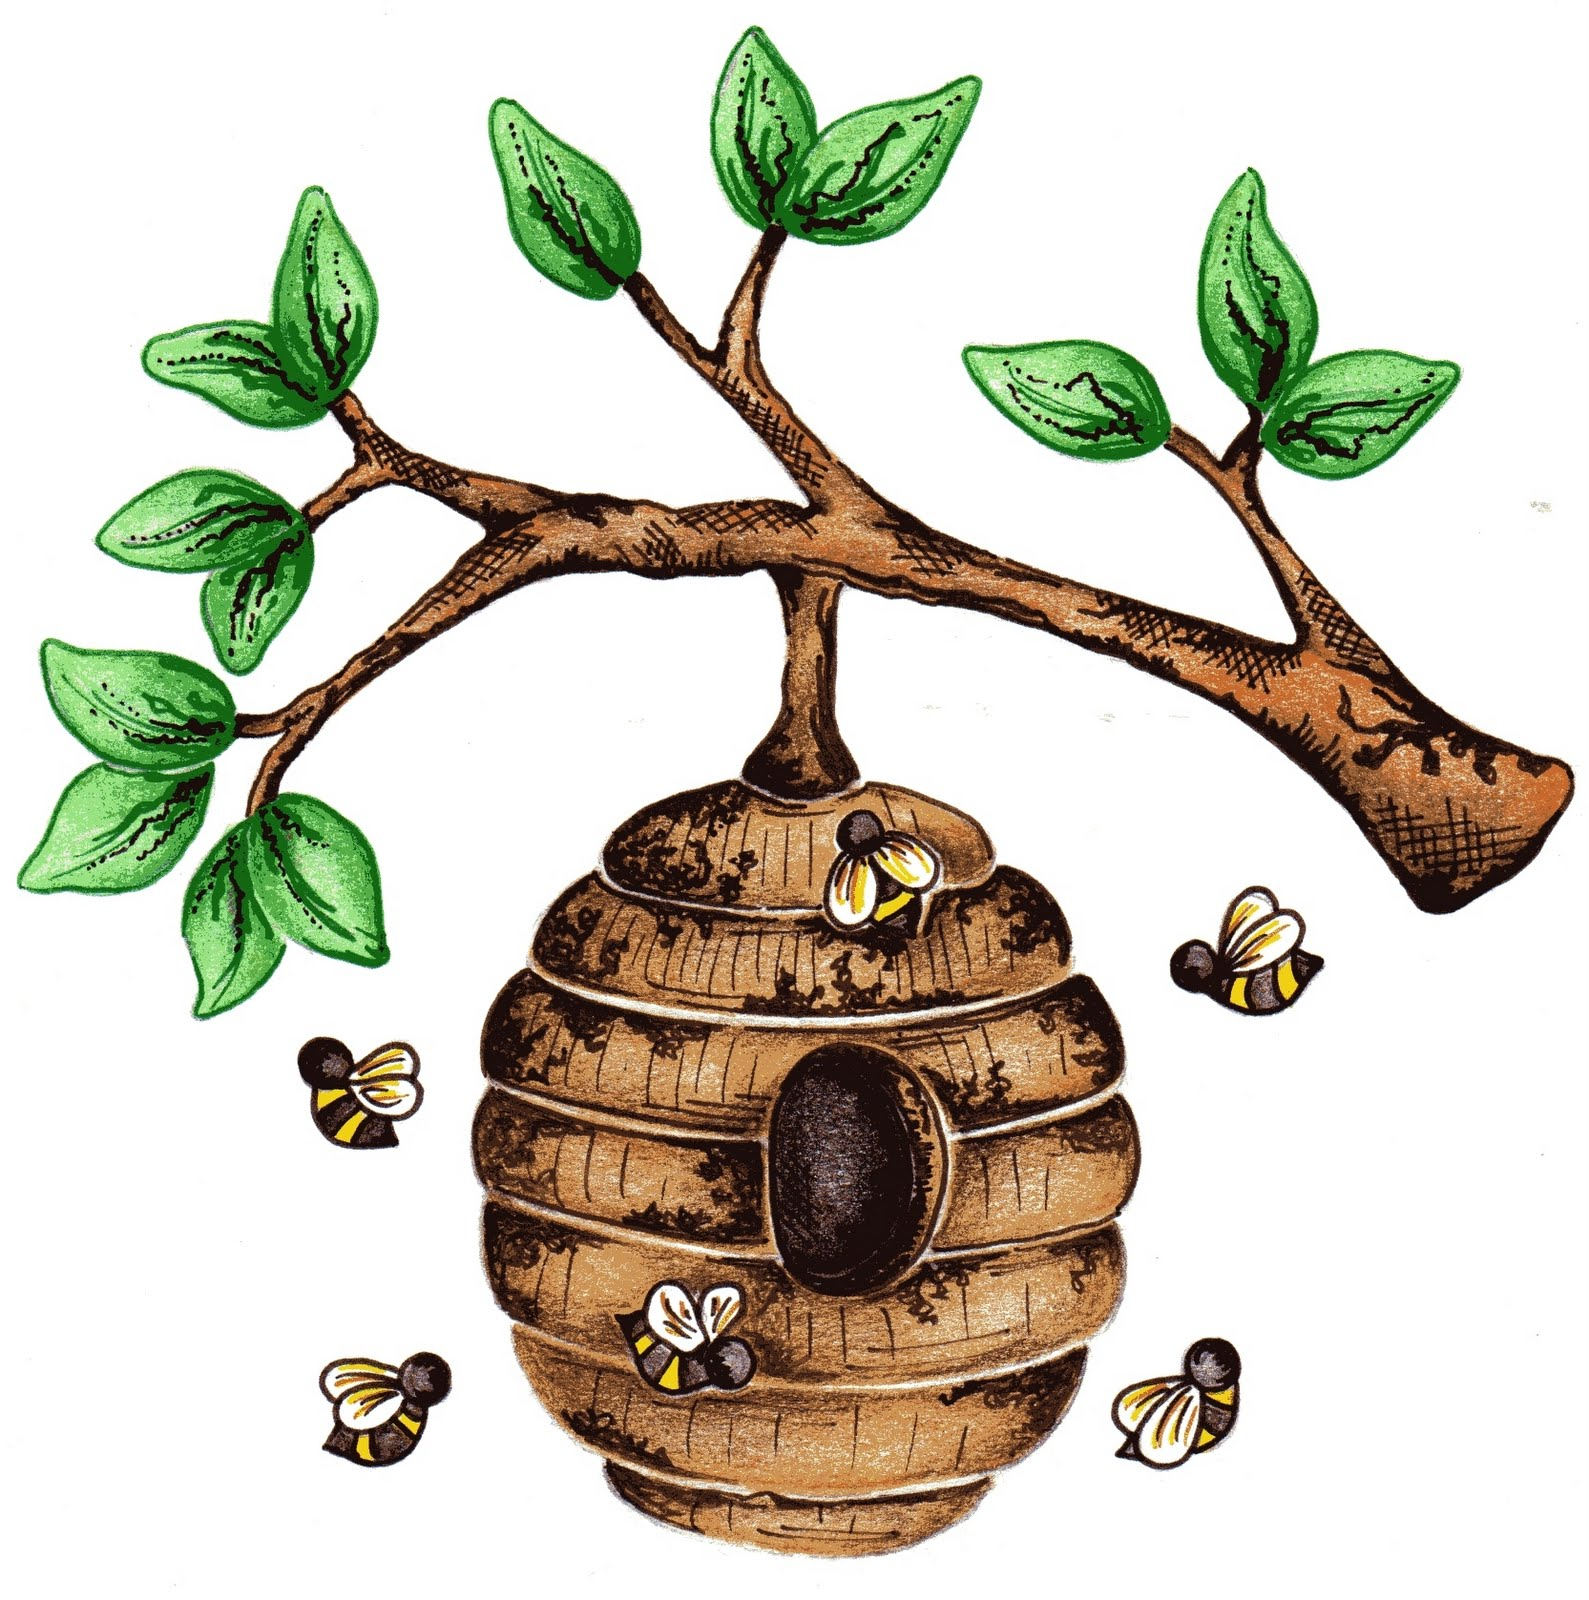 Free Bee Hive Images, Download Free Clip Art, Free Clip Art.